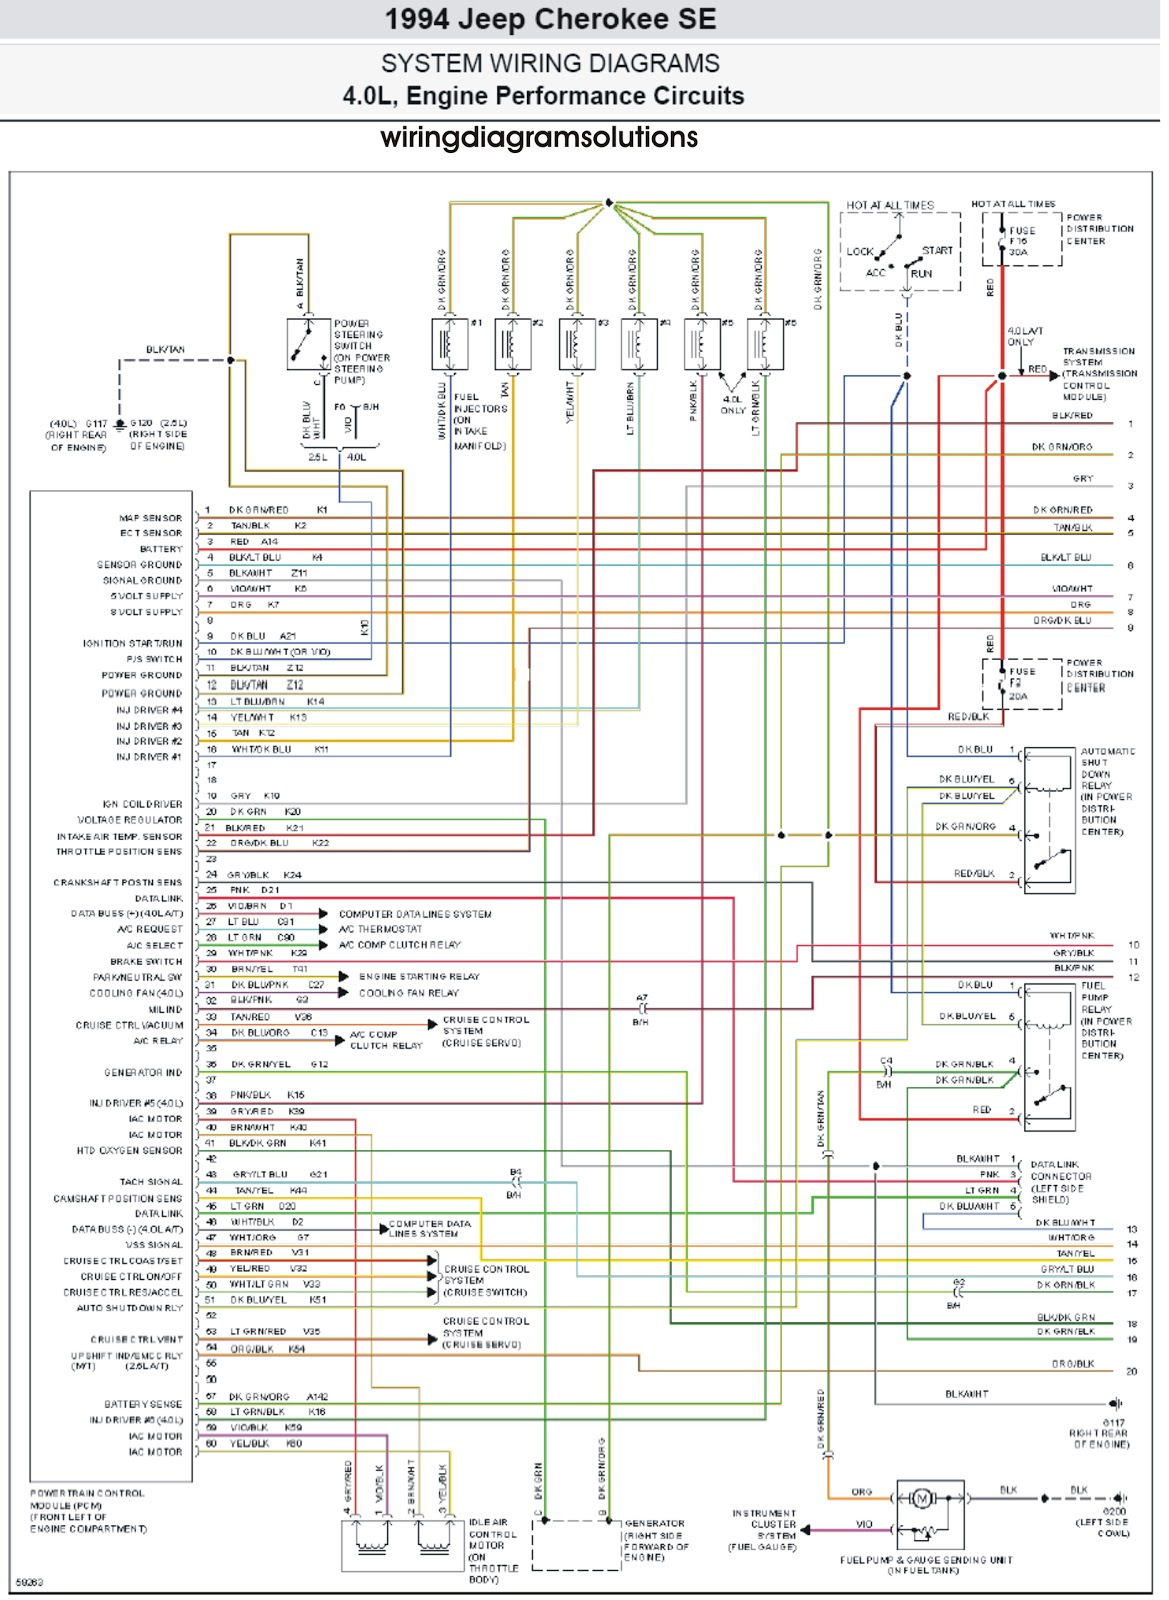 Diagram 1992 Jeep Wrangler Yj Wiring Diagram Full Version Hd Quality Wiring Diagram Sato Yti Fr